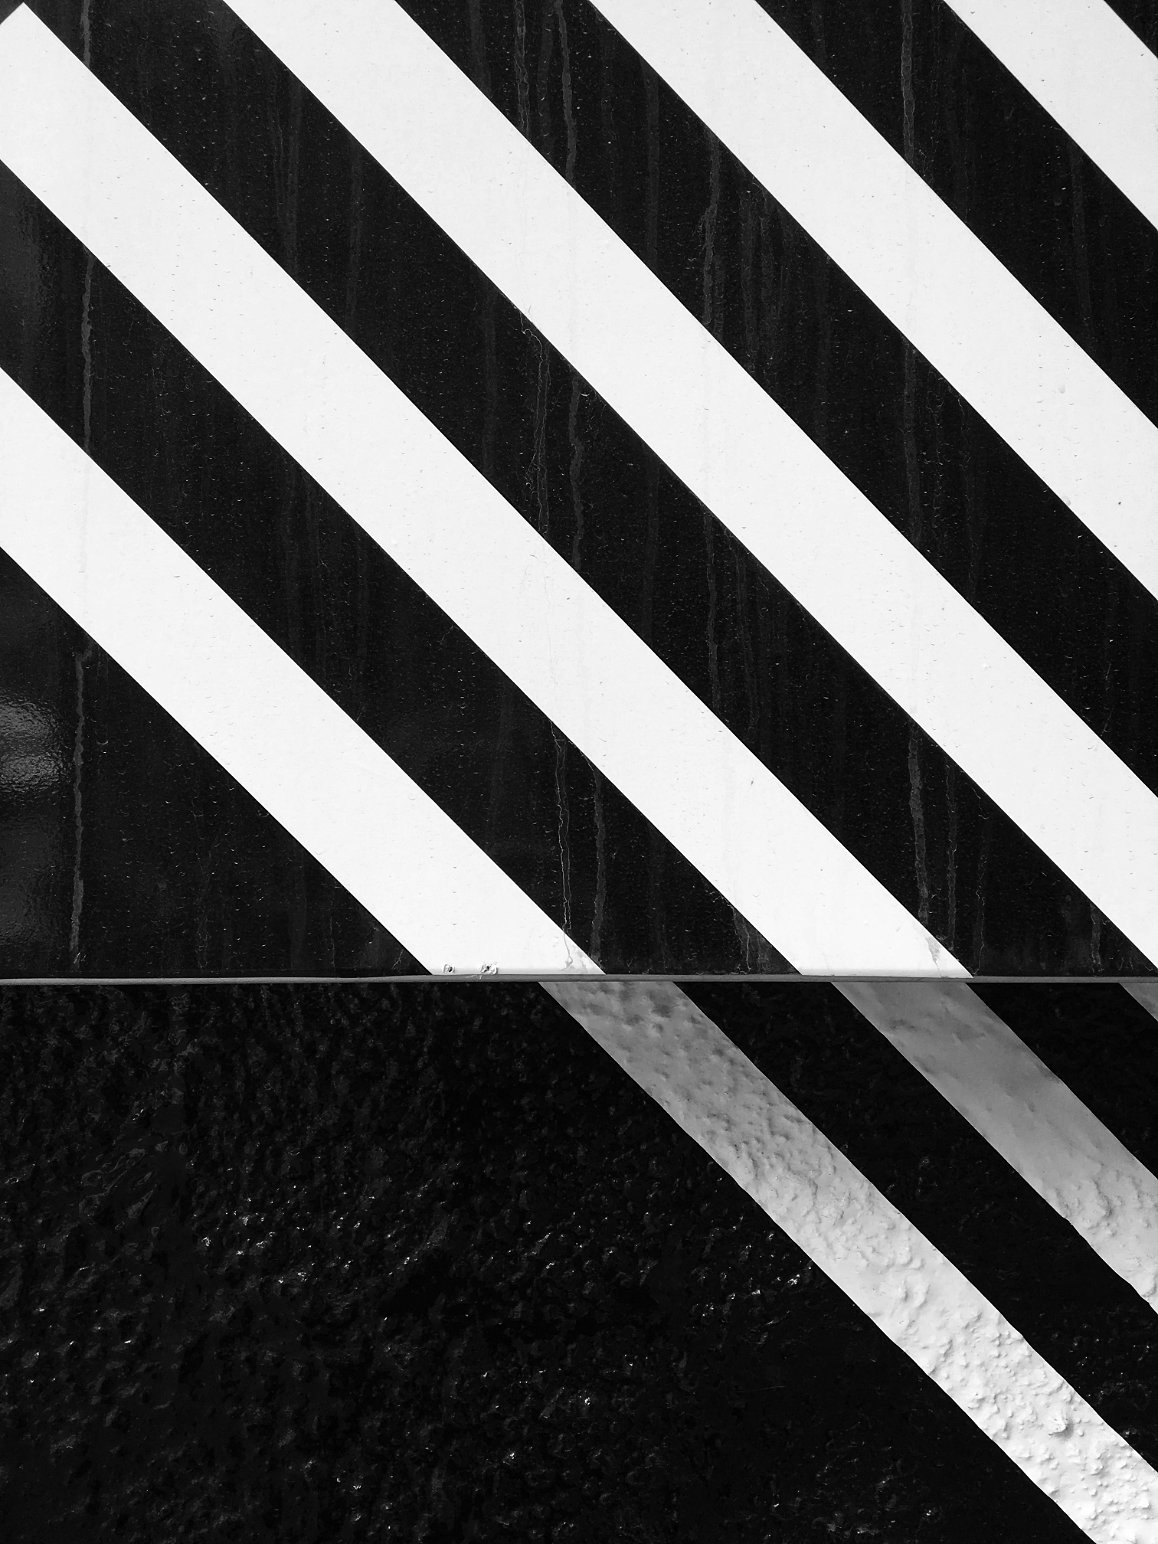 Stripes by aCreature